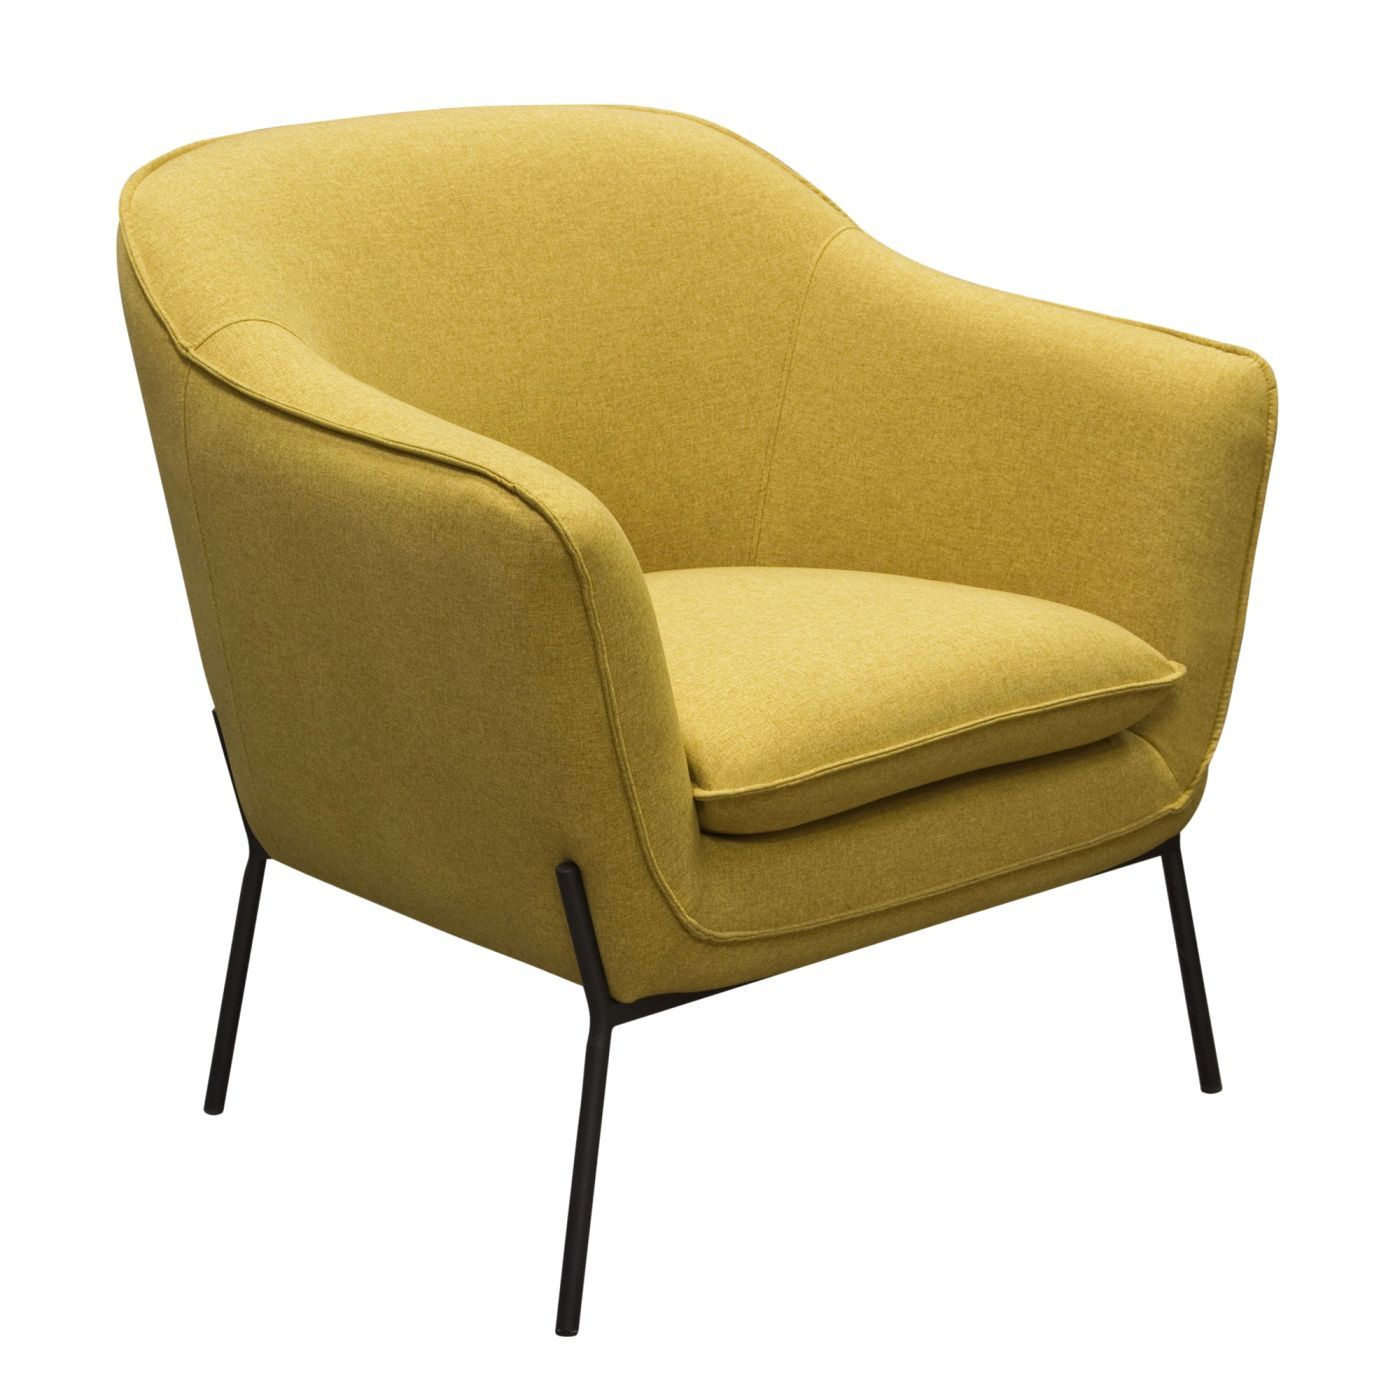 Small Accent Chair With Metal Legs: Status Accent Chair In Yellow Fabric With Metal Leg